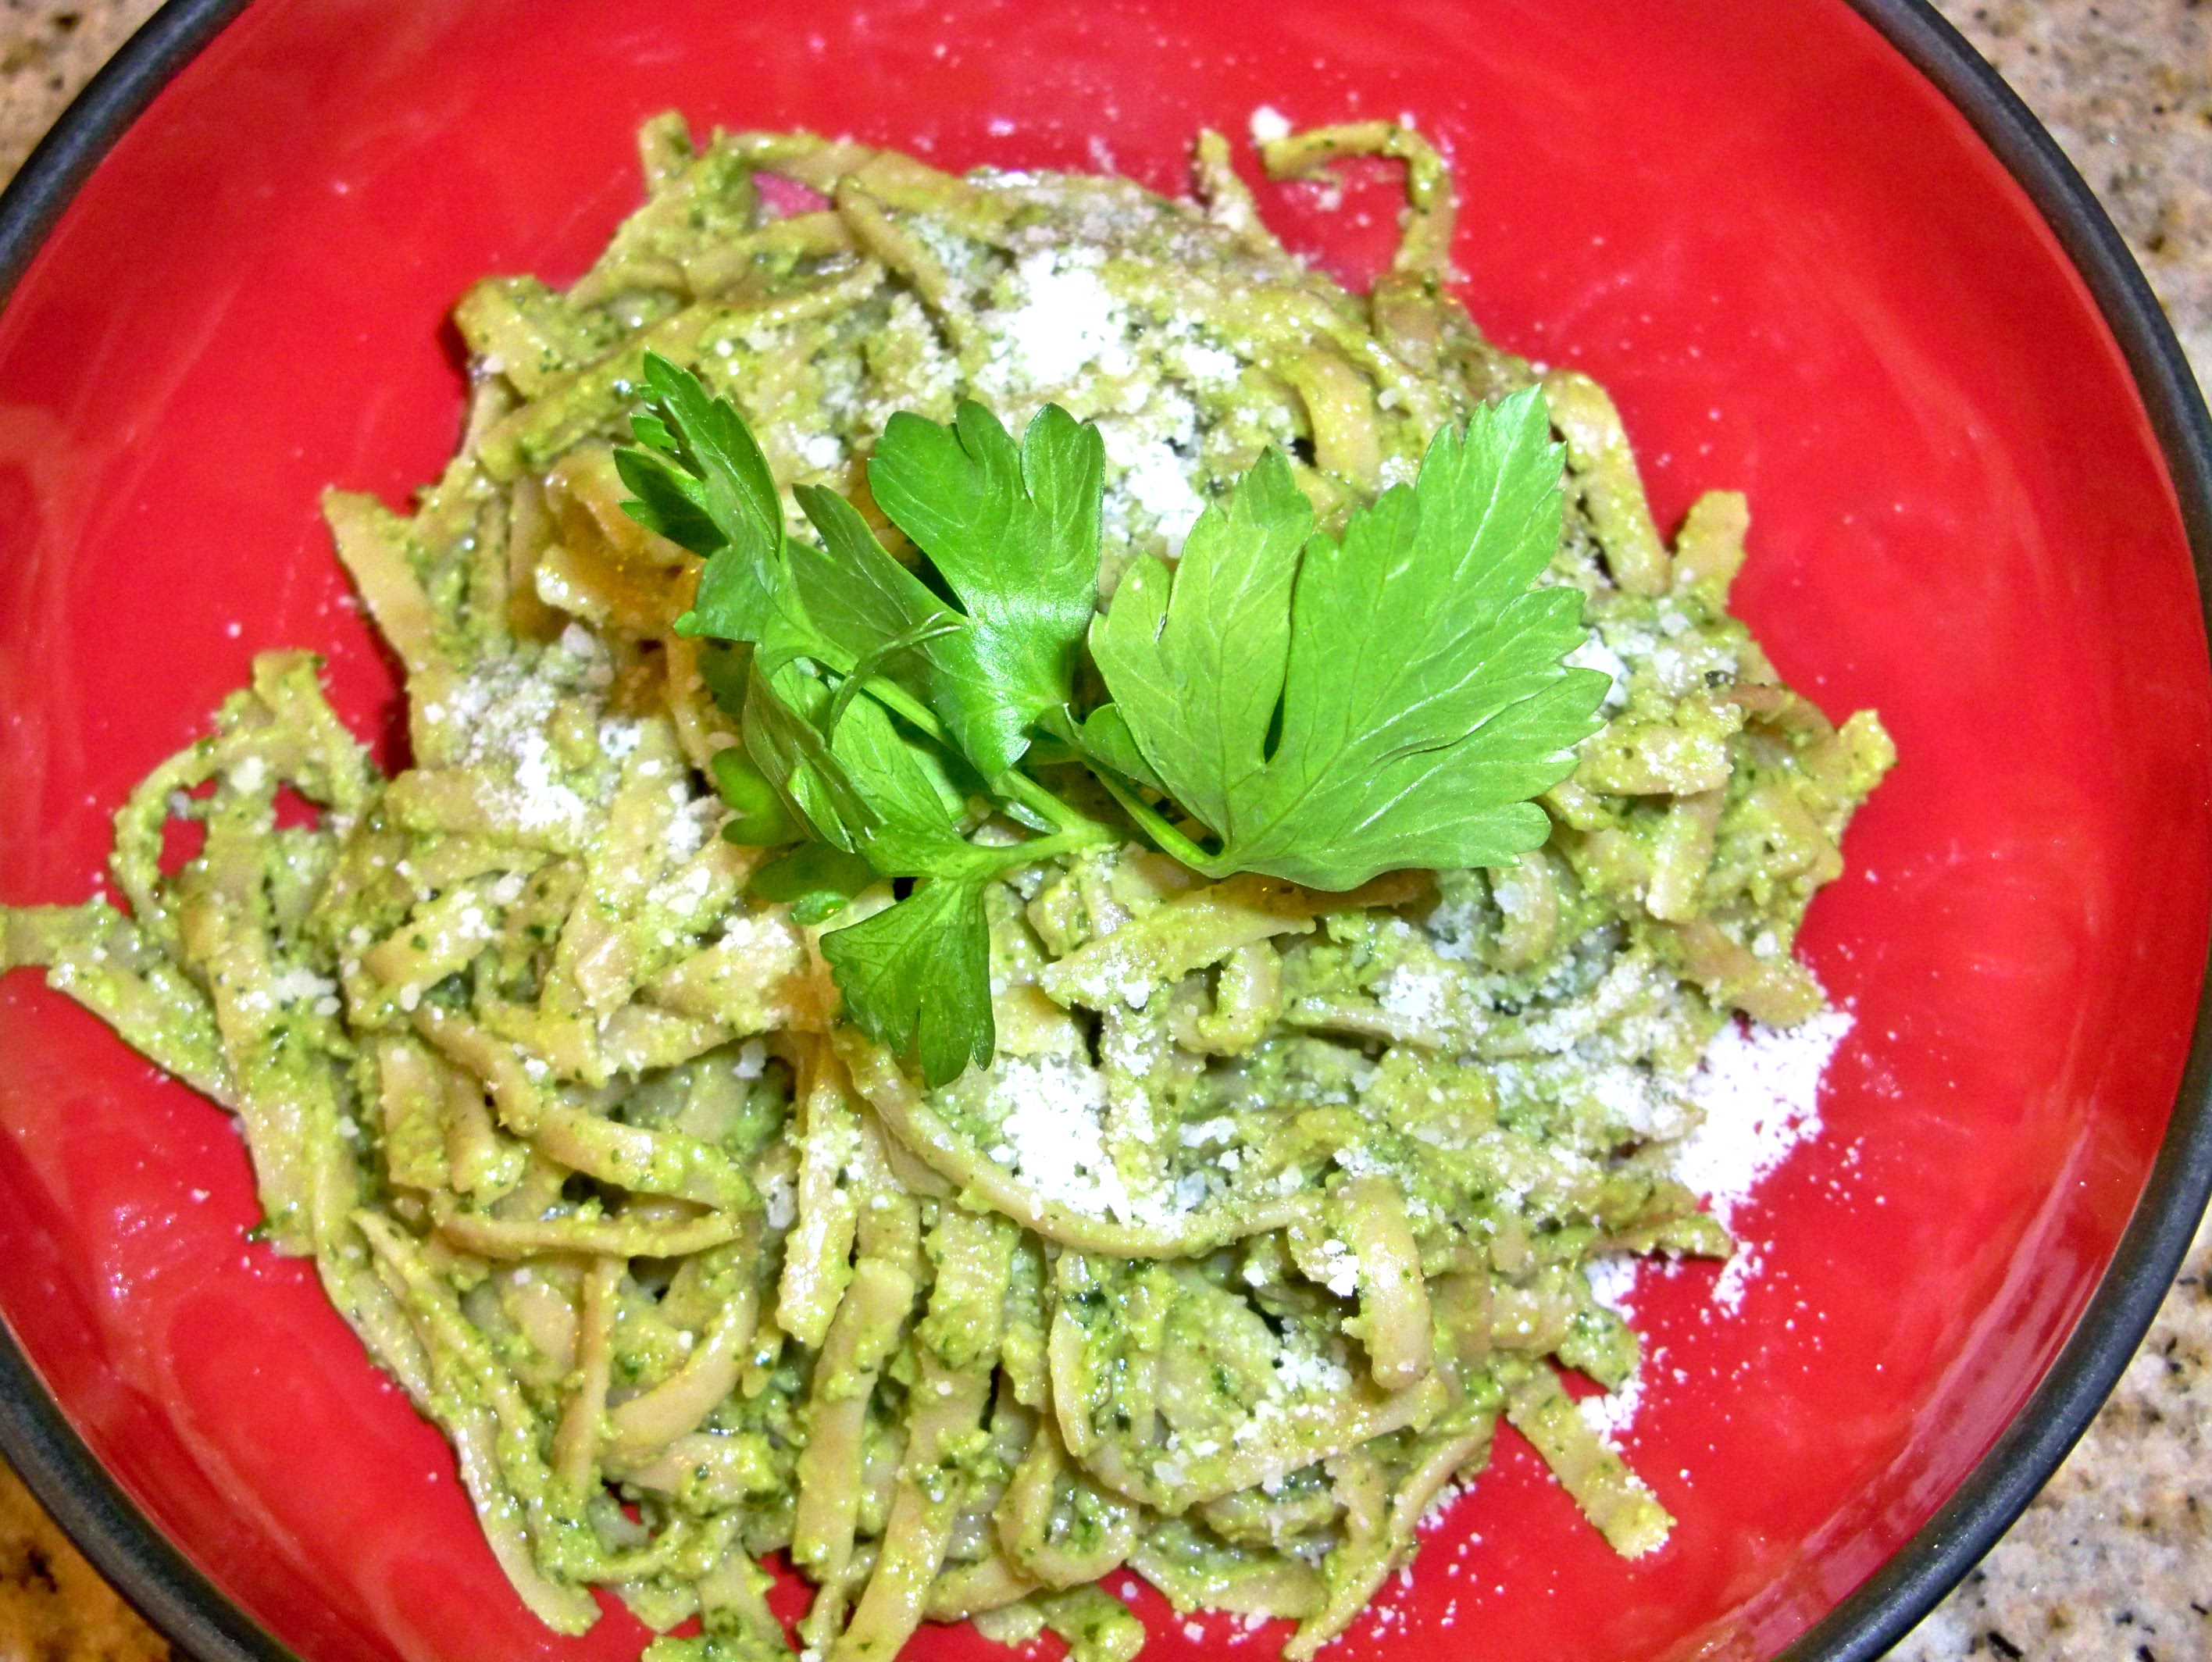 Basil Parsley Pesto with Walnuts | AttractingWellness.net